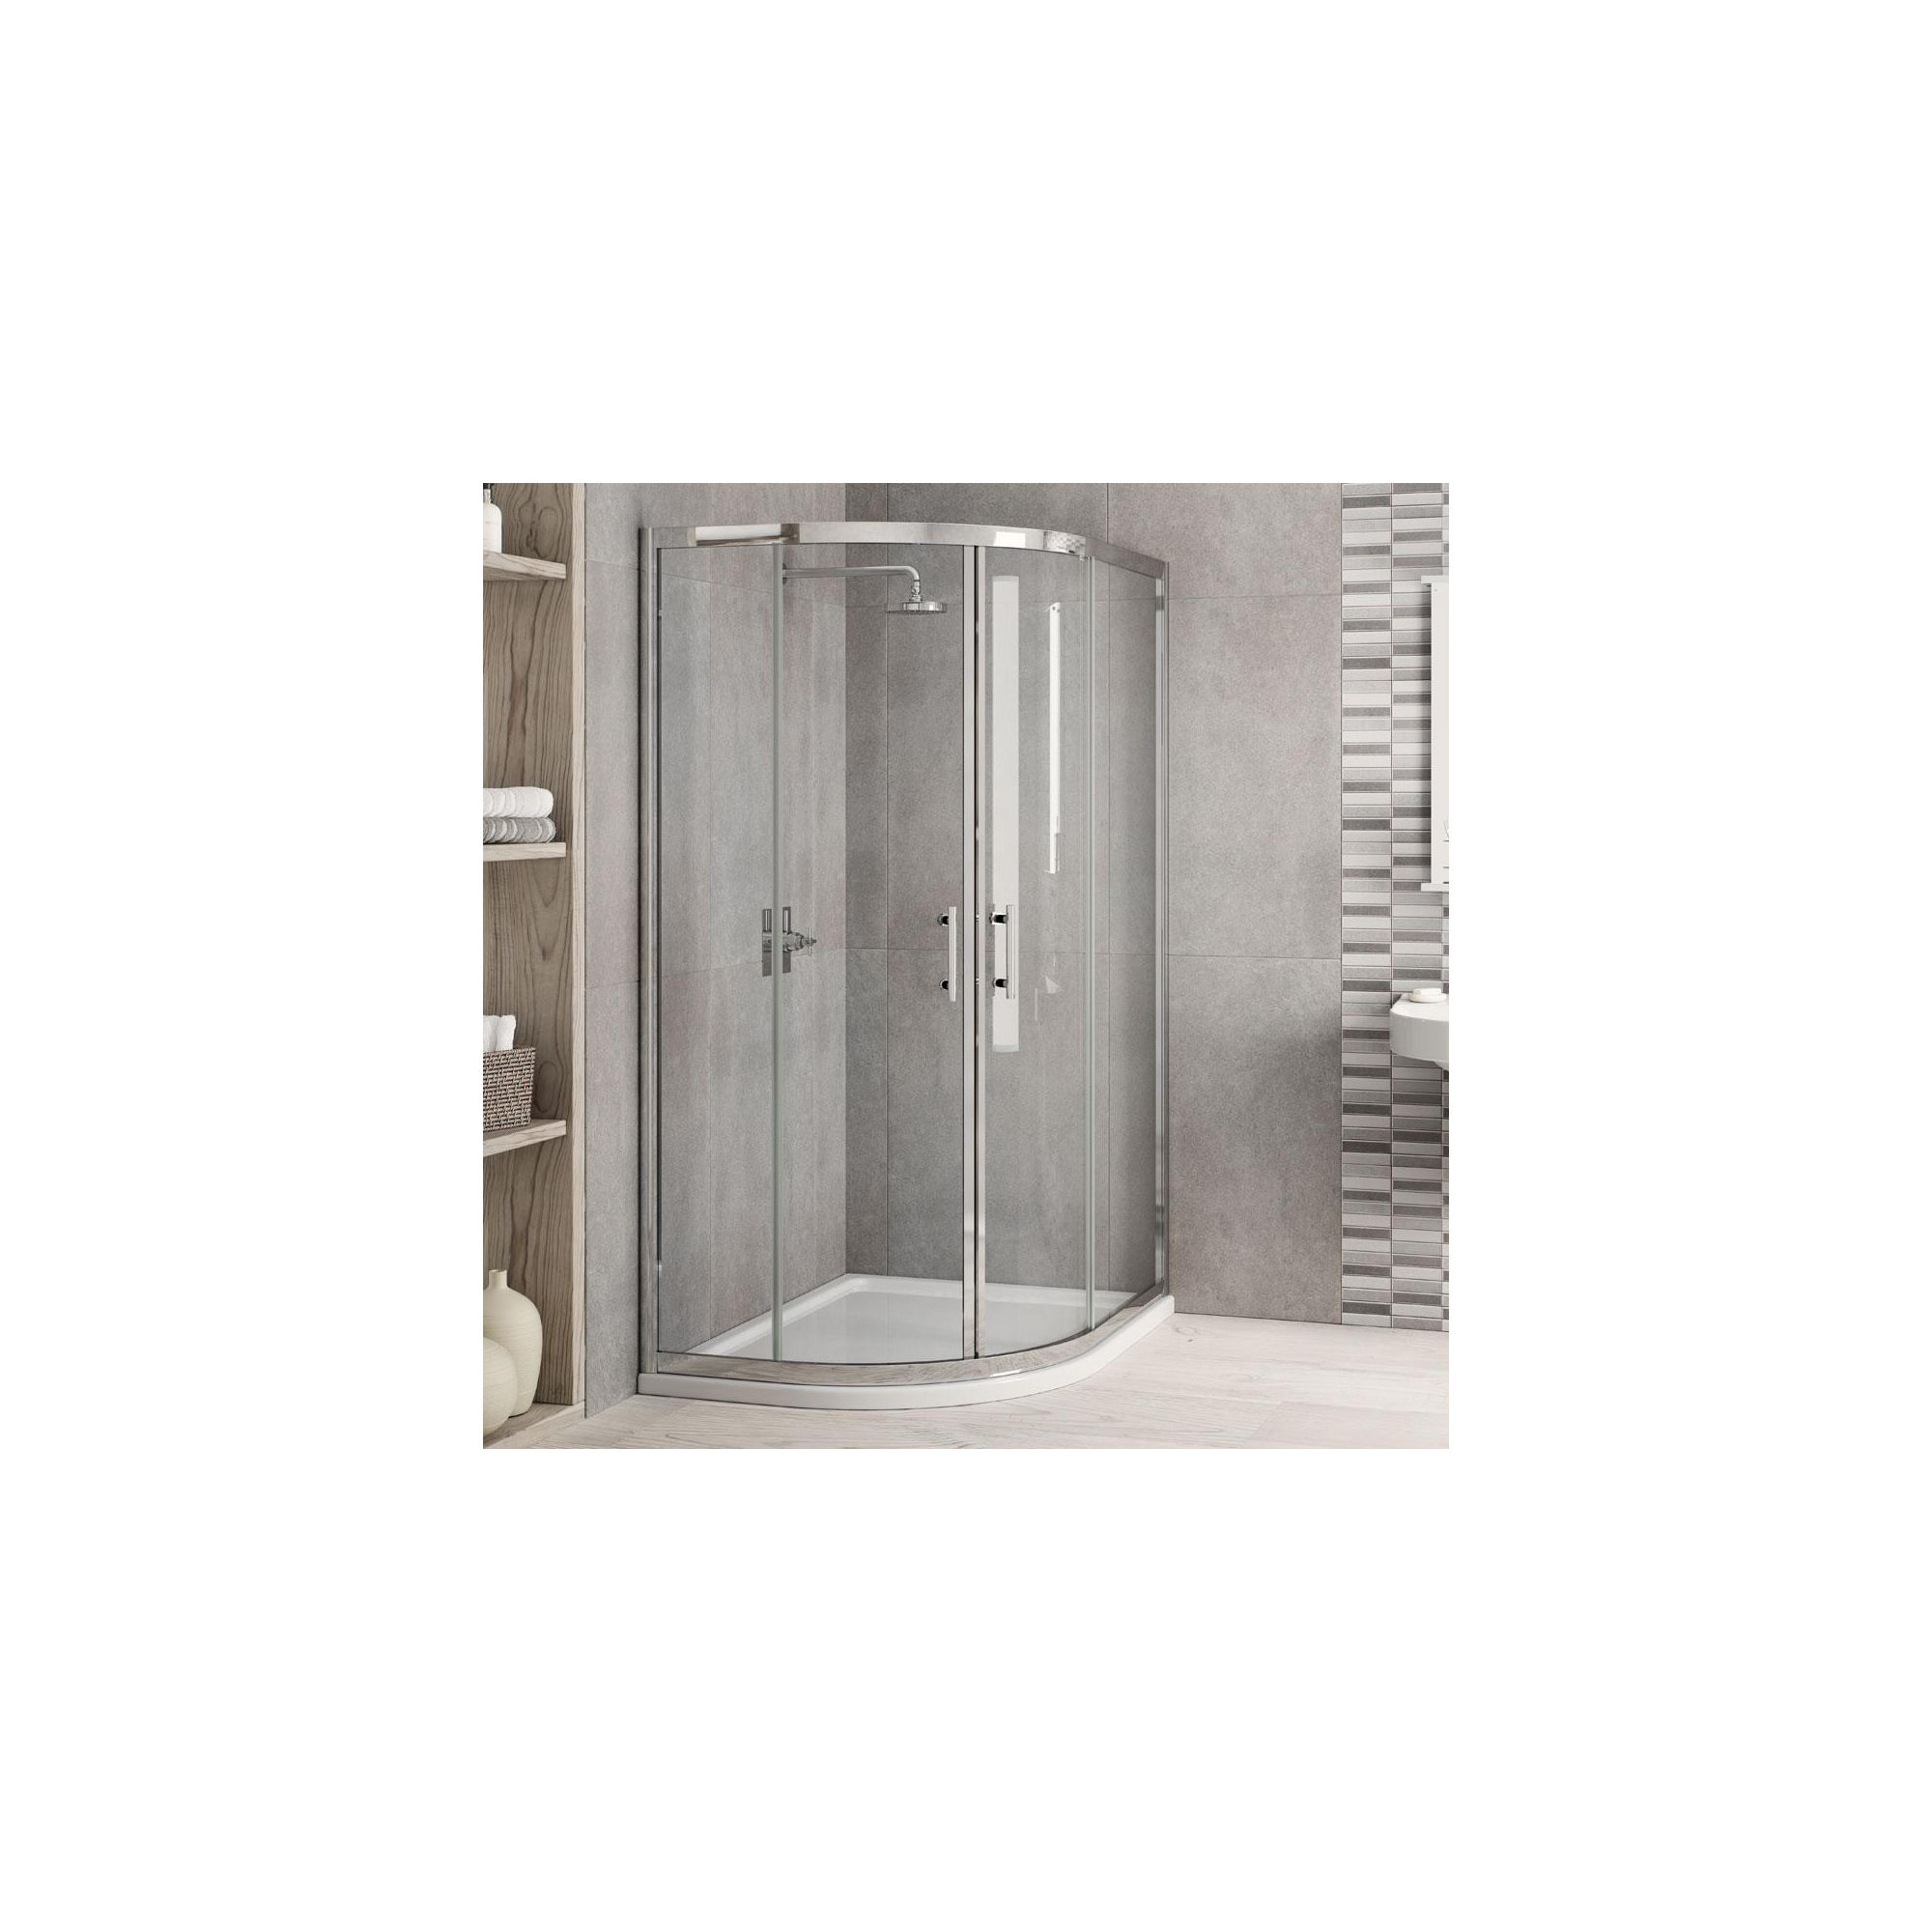 Elemis Inspire Offset Quadrant Shower Enclosure, 900mm x 800mm, 6mm Glass, Low Profile Tray, Right Handed at Tesco Direct